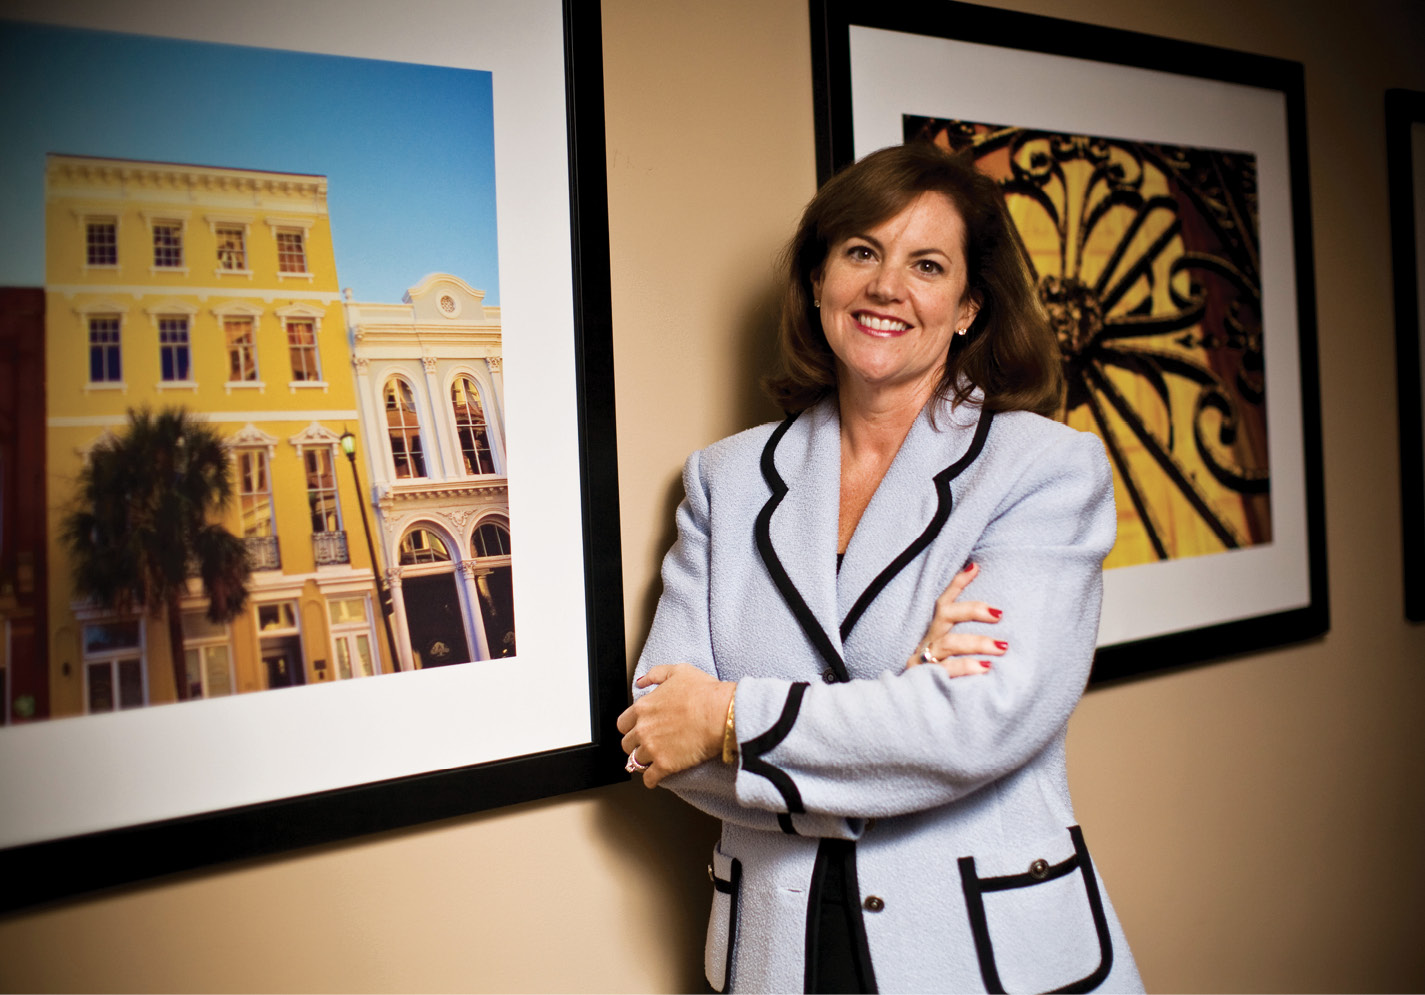 Charleston Area Convention and Visitors Bureau CEO Helen Hill says the key to balancing tourism and livability issues is the right mix of hotel types across municipal lines.